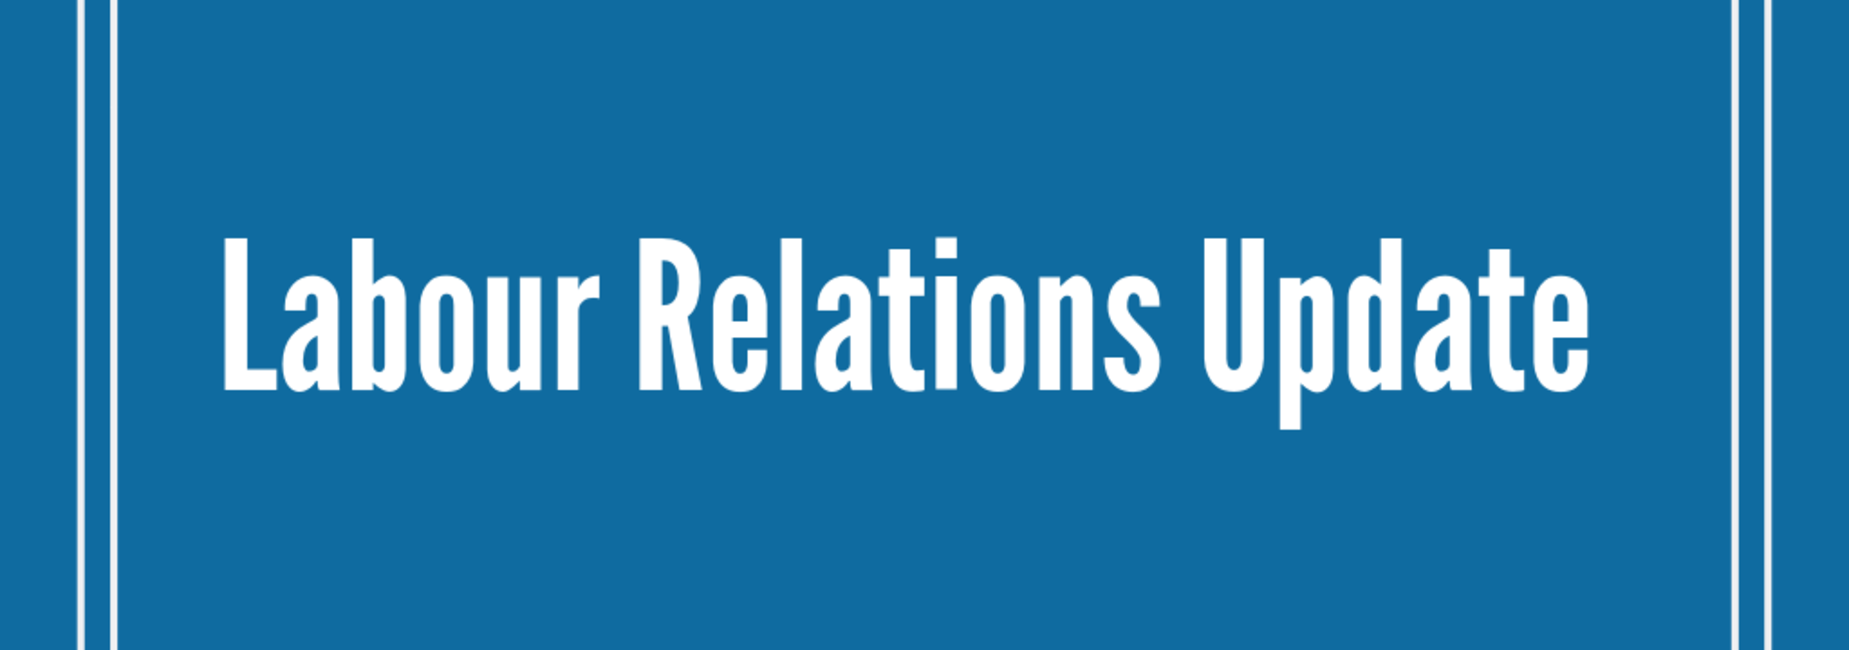 Labour Relations Update